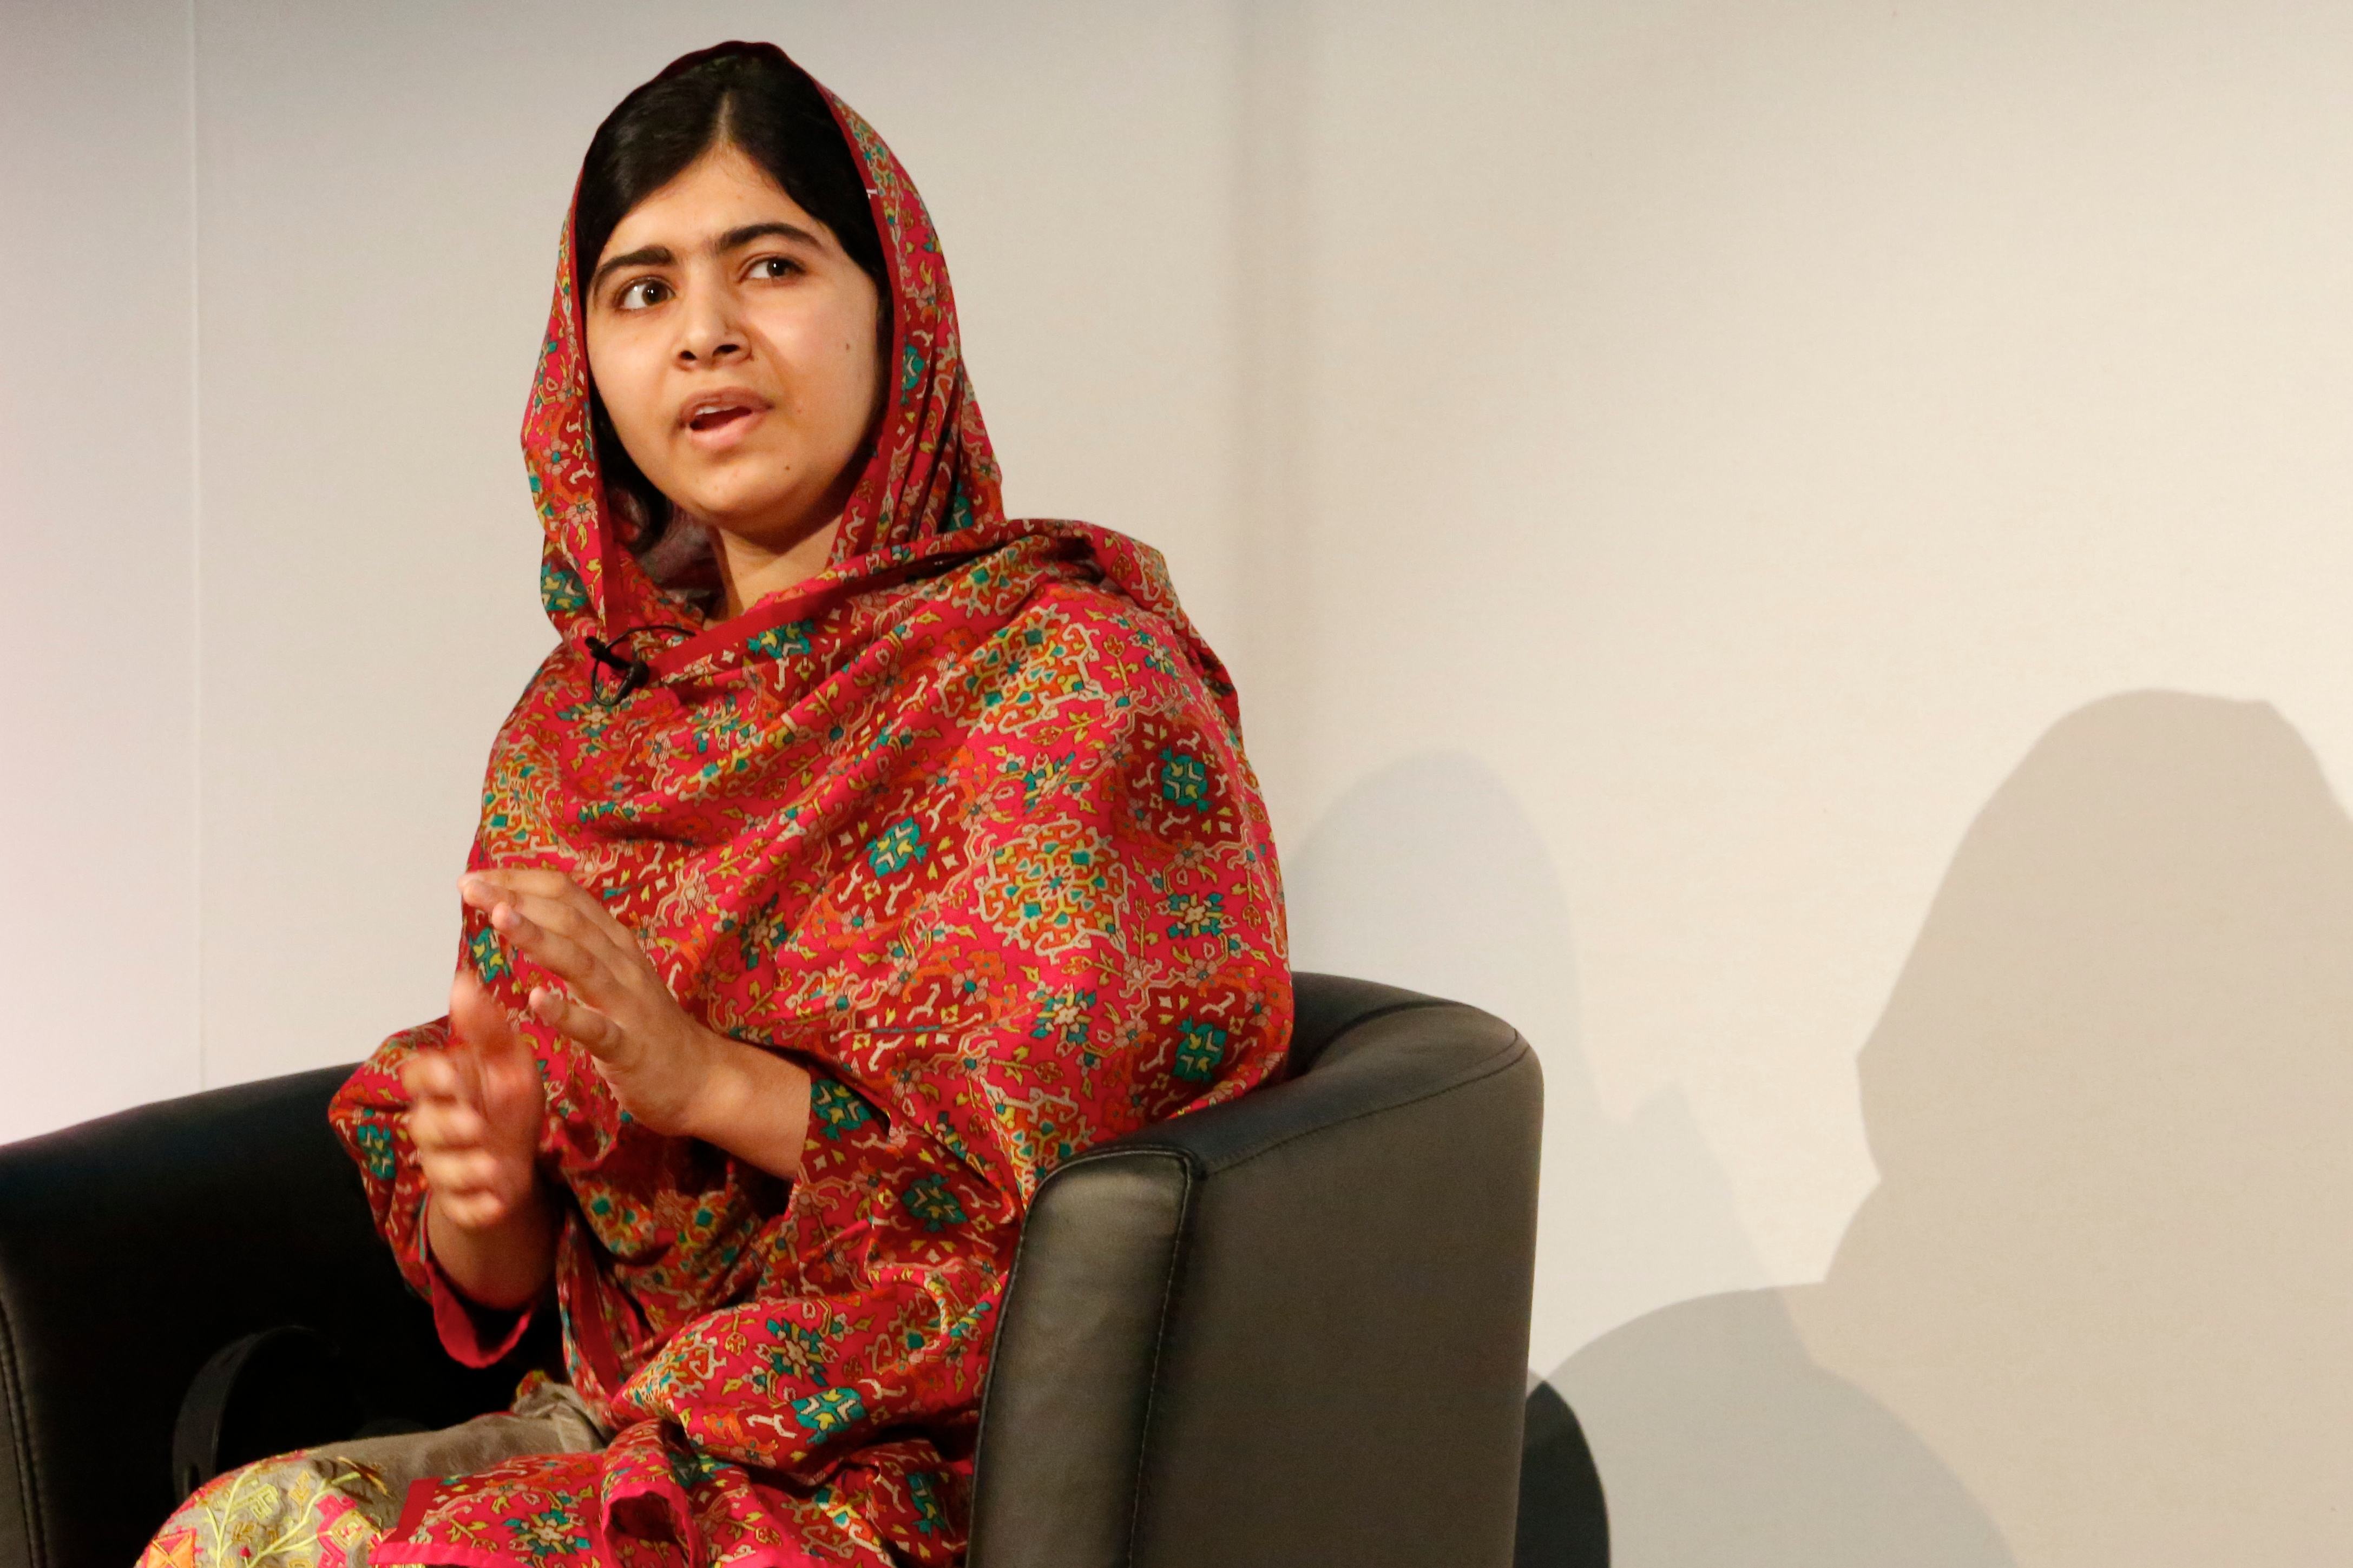 The 2014 Nobel Peace Prize recipient has written a New York Times best-selling memoir and continues her fight for girls' education. PHOTO VIA WIKIMEDIA COMMONS.